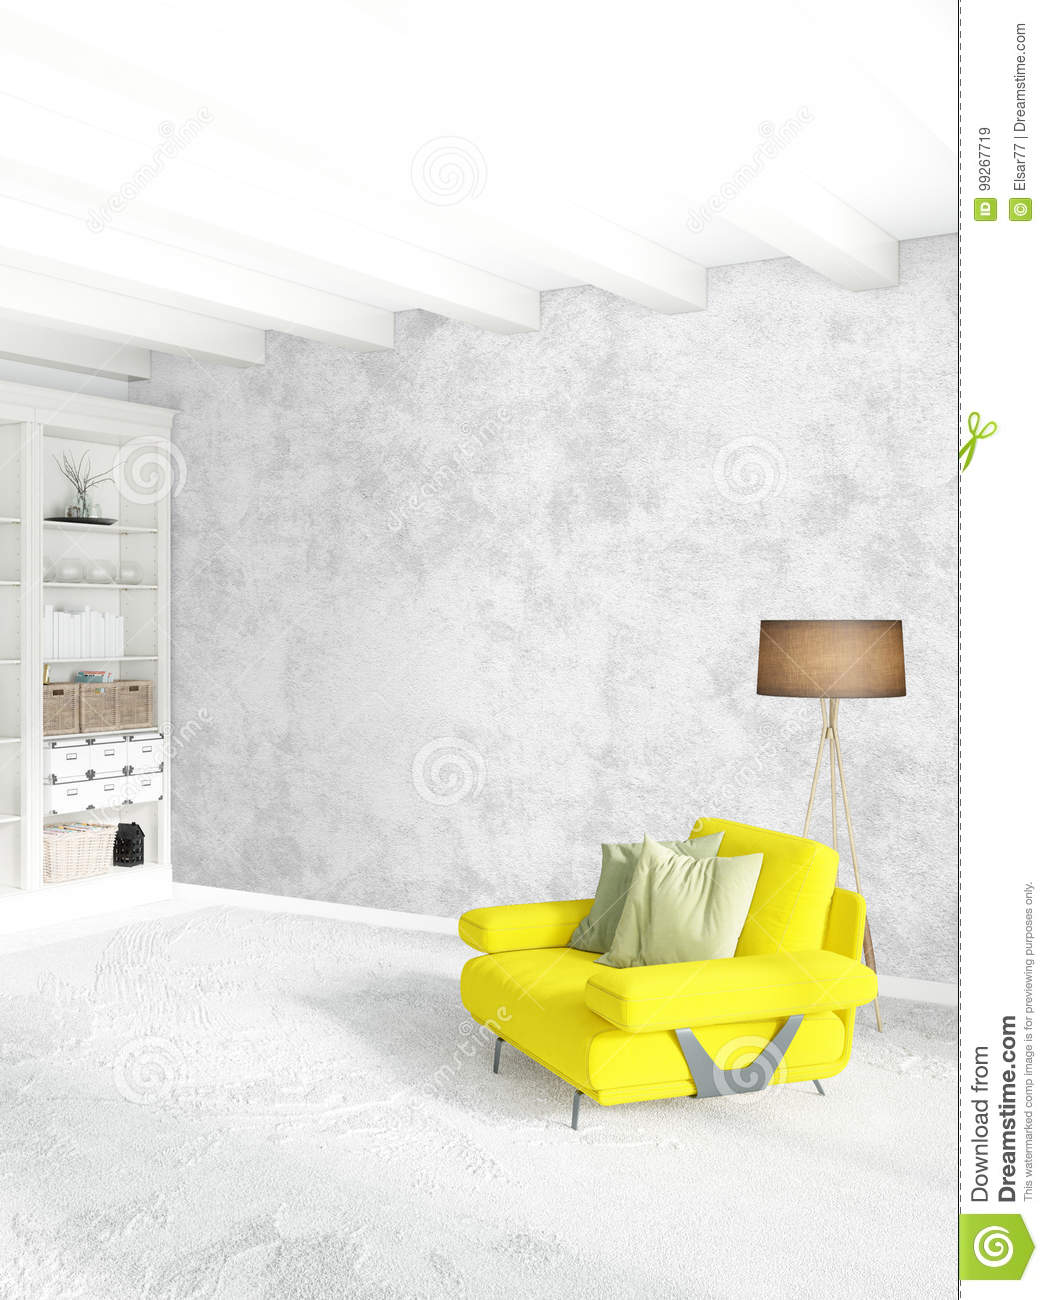 Modern design loft interior bedroom or living room with eclectic wall with space 3d rendering